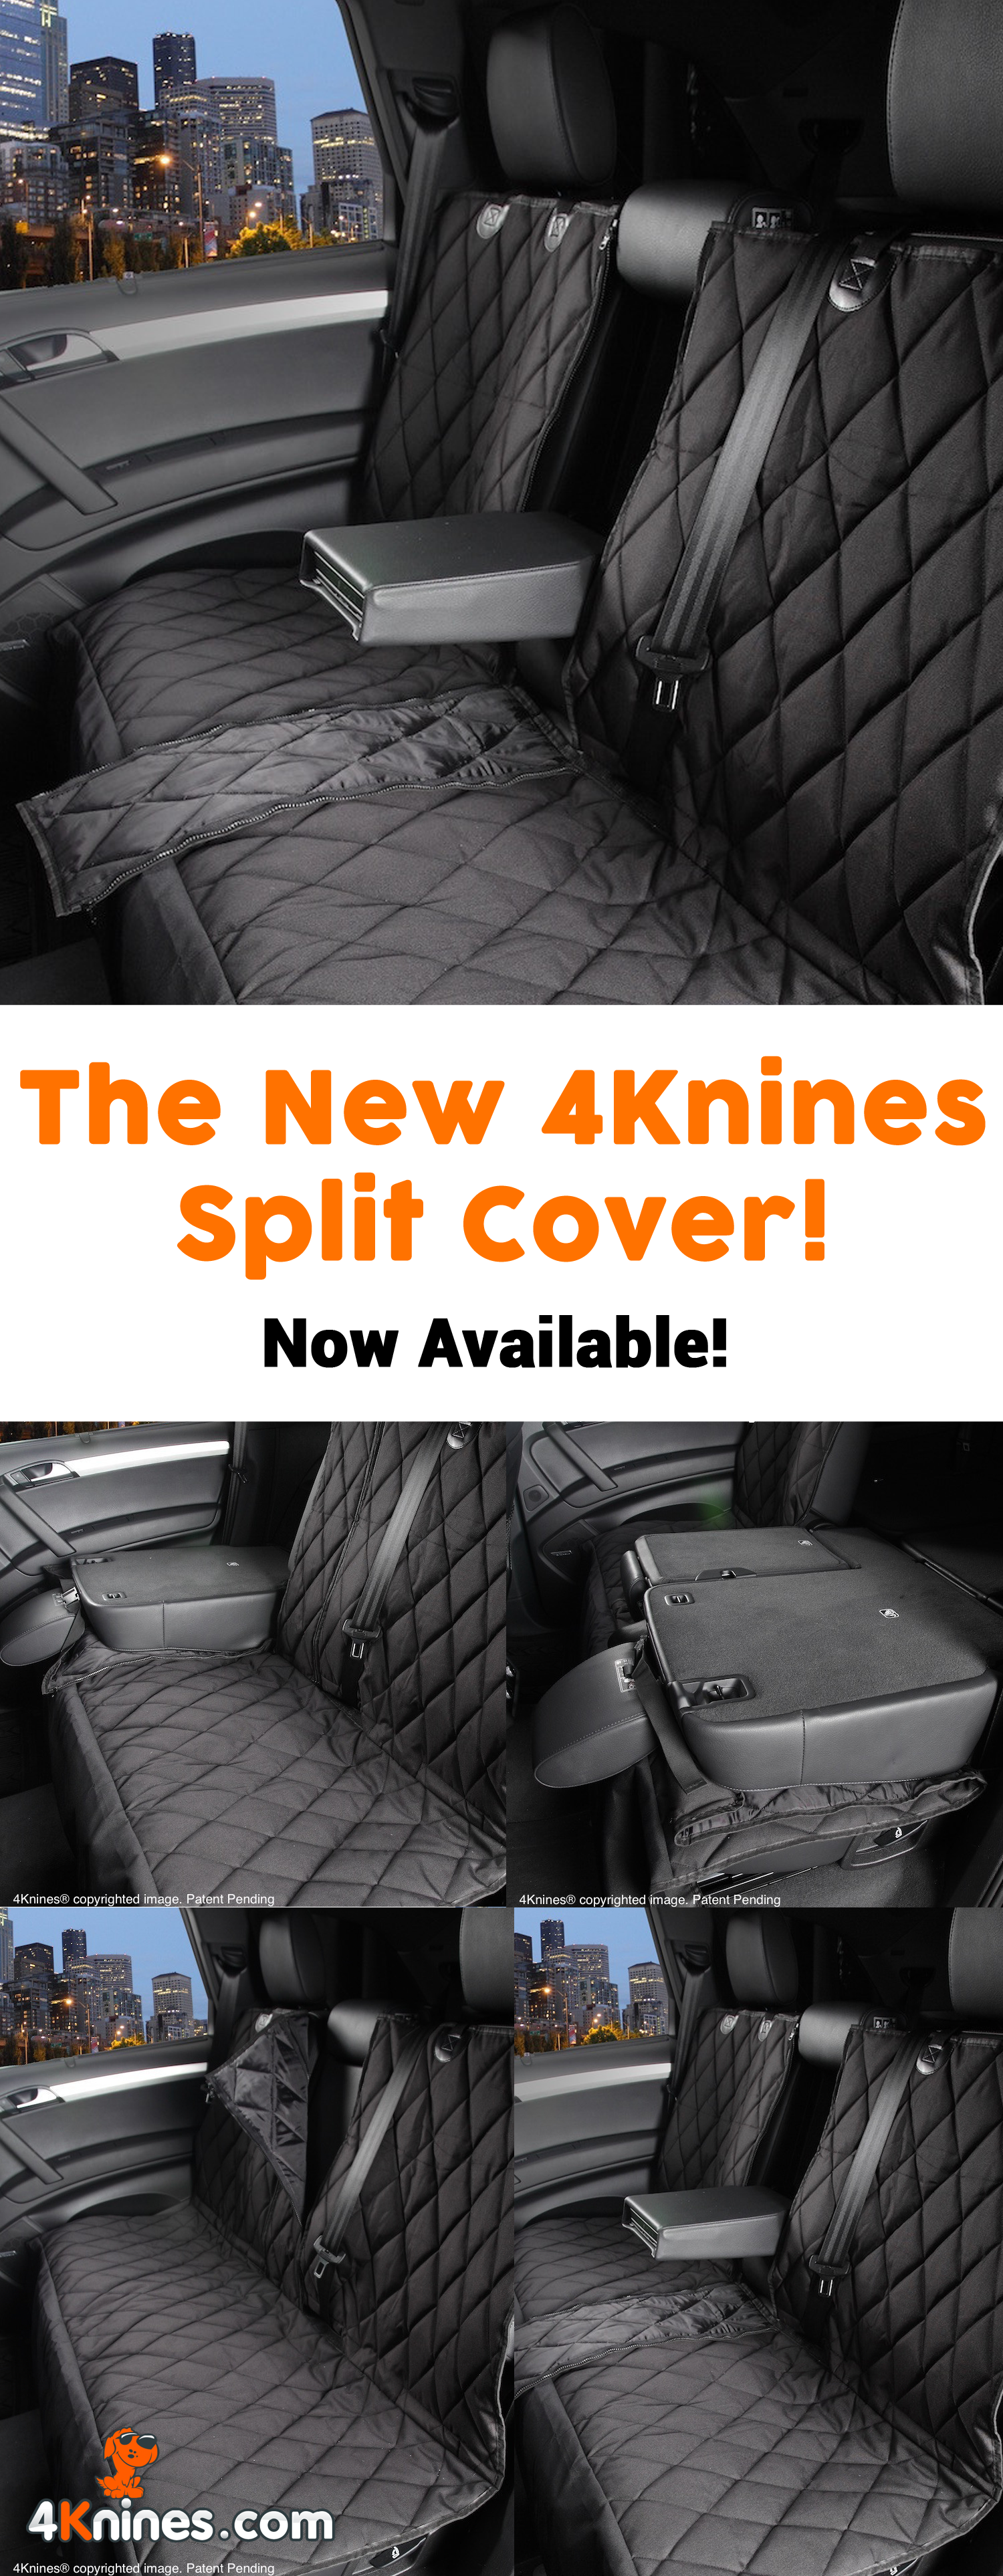 4Knines Split Seat Covers For Dogs And Pets Allows Use Of A 60 40